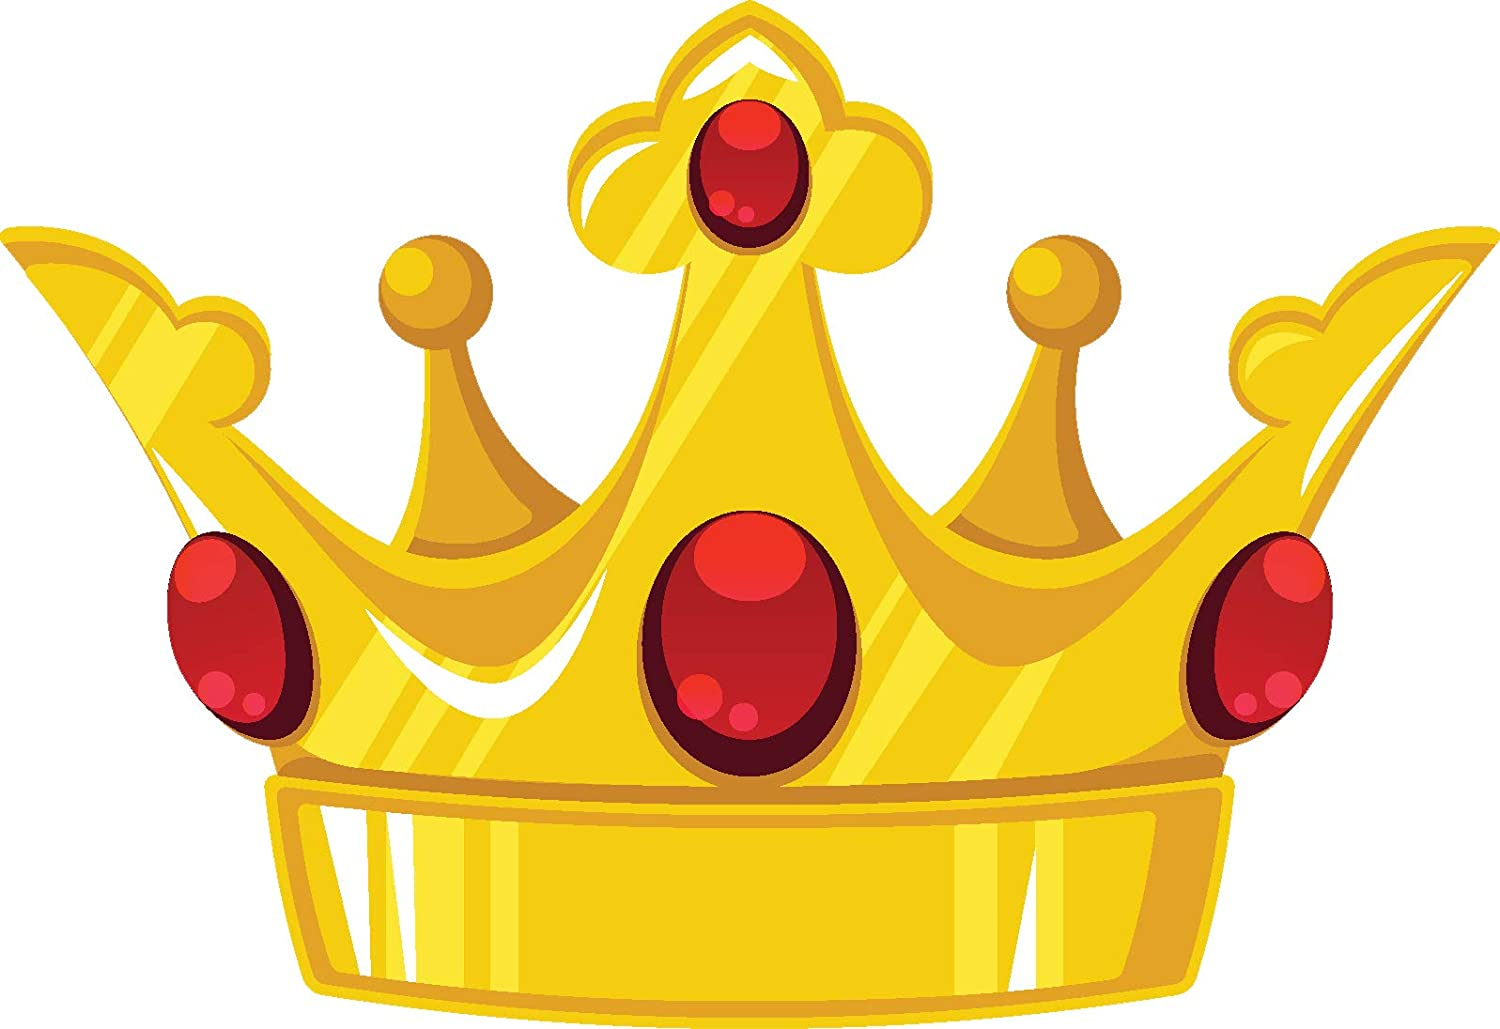 Amazon Com Pretty Classic Golden Yellow Royal Crown Cartoon Emoji Vinyl Sticker 12 Wide Red Jewels Automotive Filmed & edited by final cut multimedia. royal crown cartoon emoji vinyl sticker